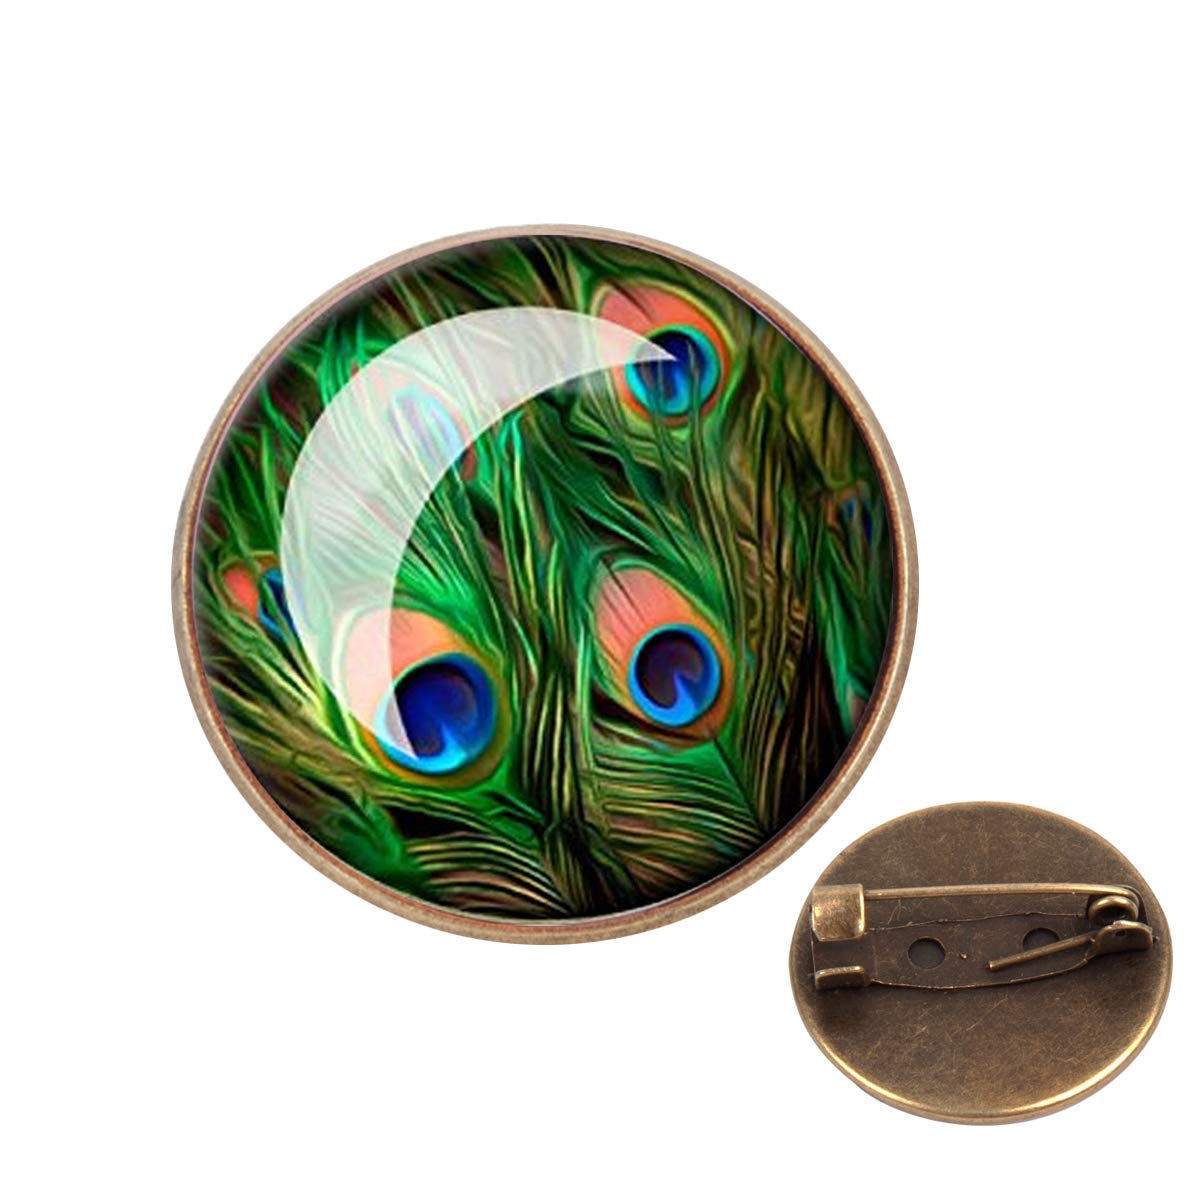 Pinback Buttons Badges Pins Green Peacock Eyes Feather Lapel Pin Brooch Clip Trendy Accessory Jacket T-Shirt Bag Hat Shoe